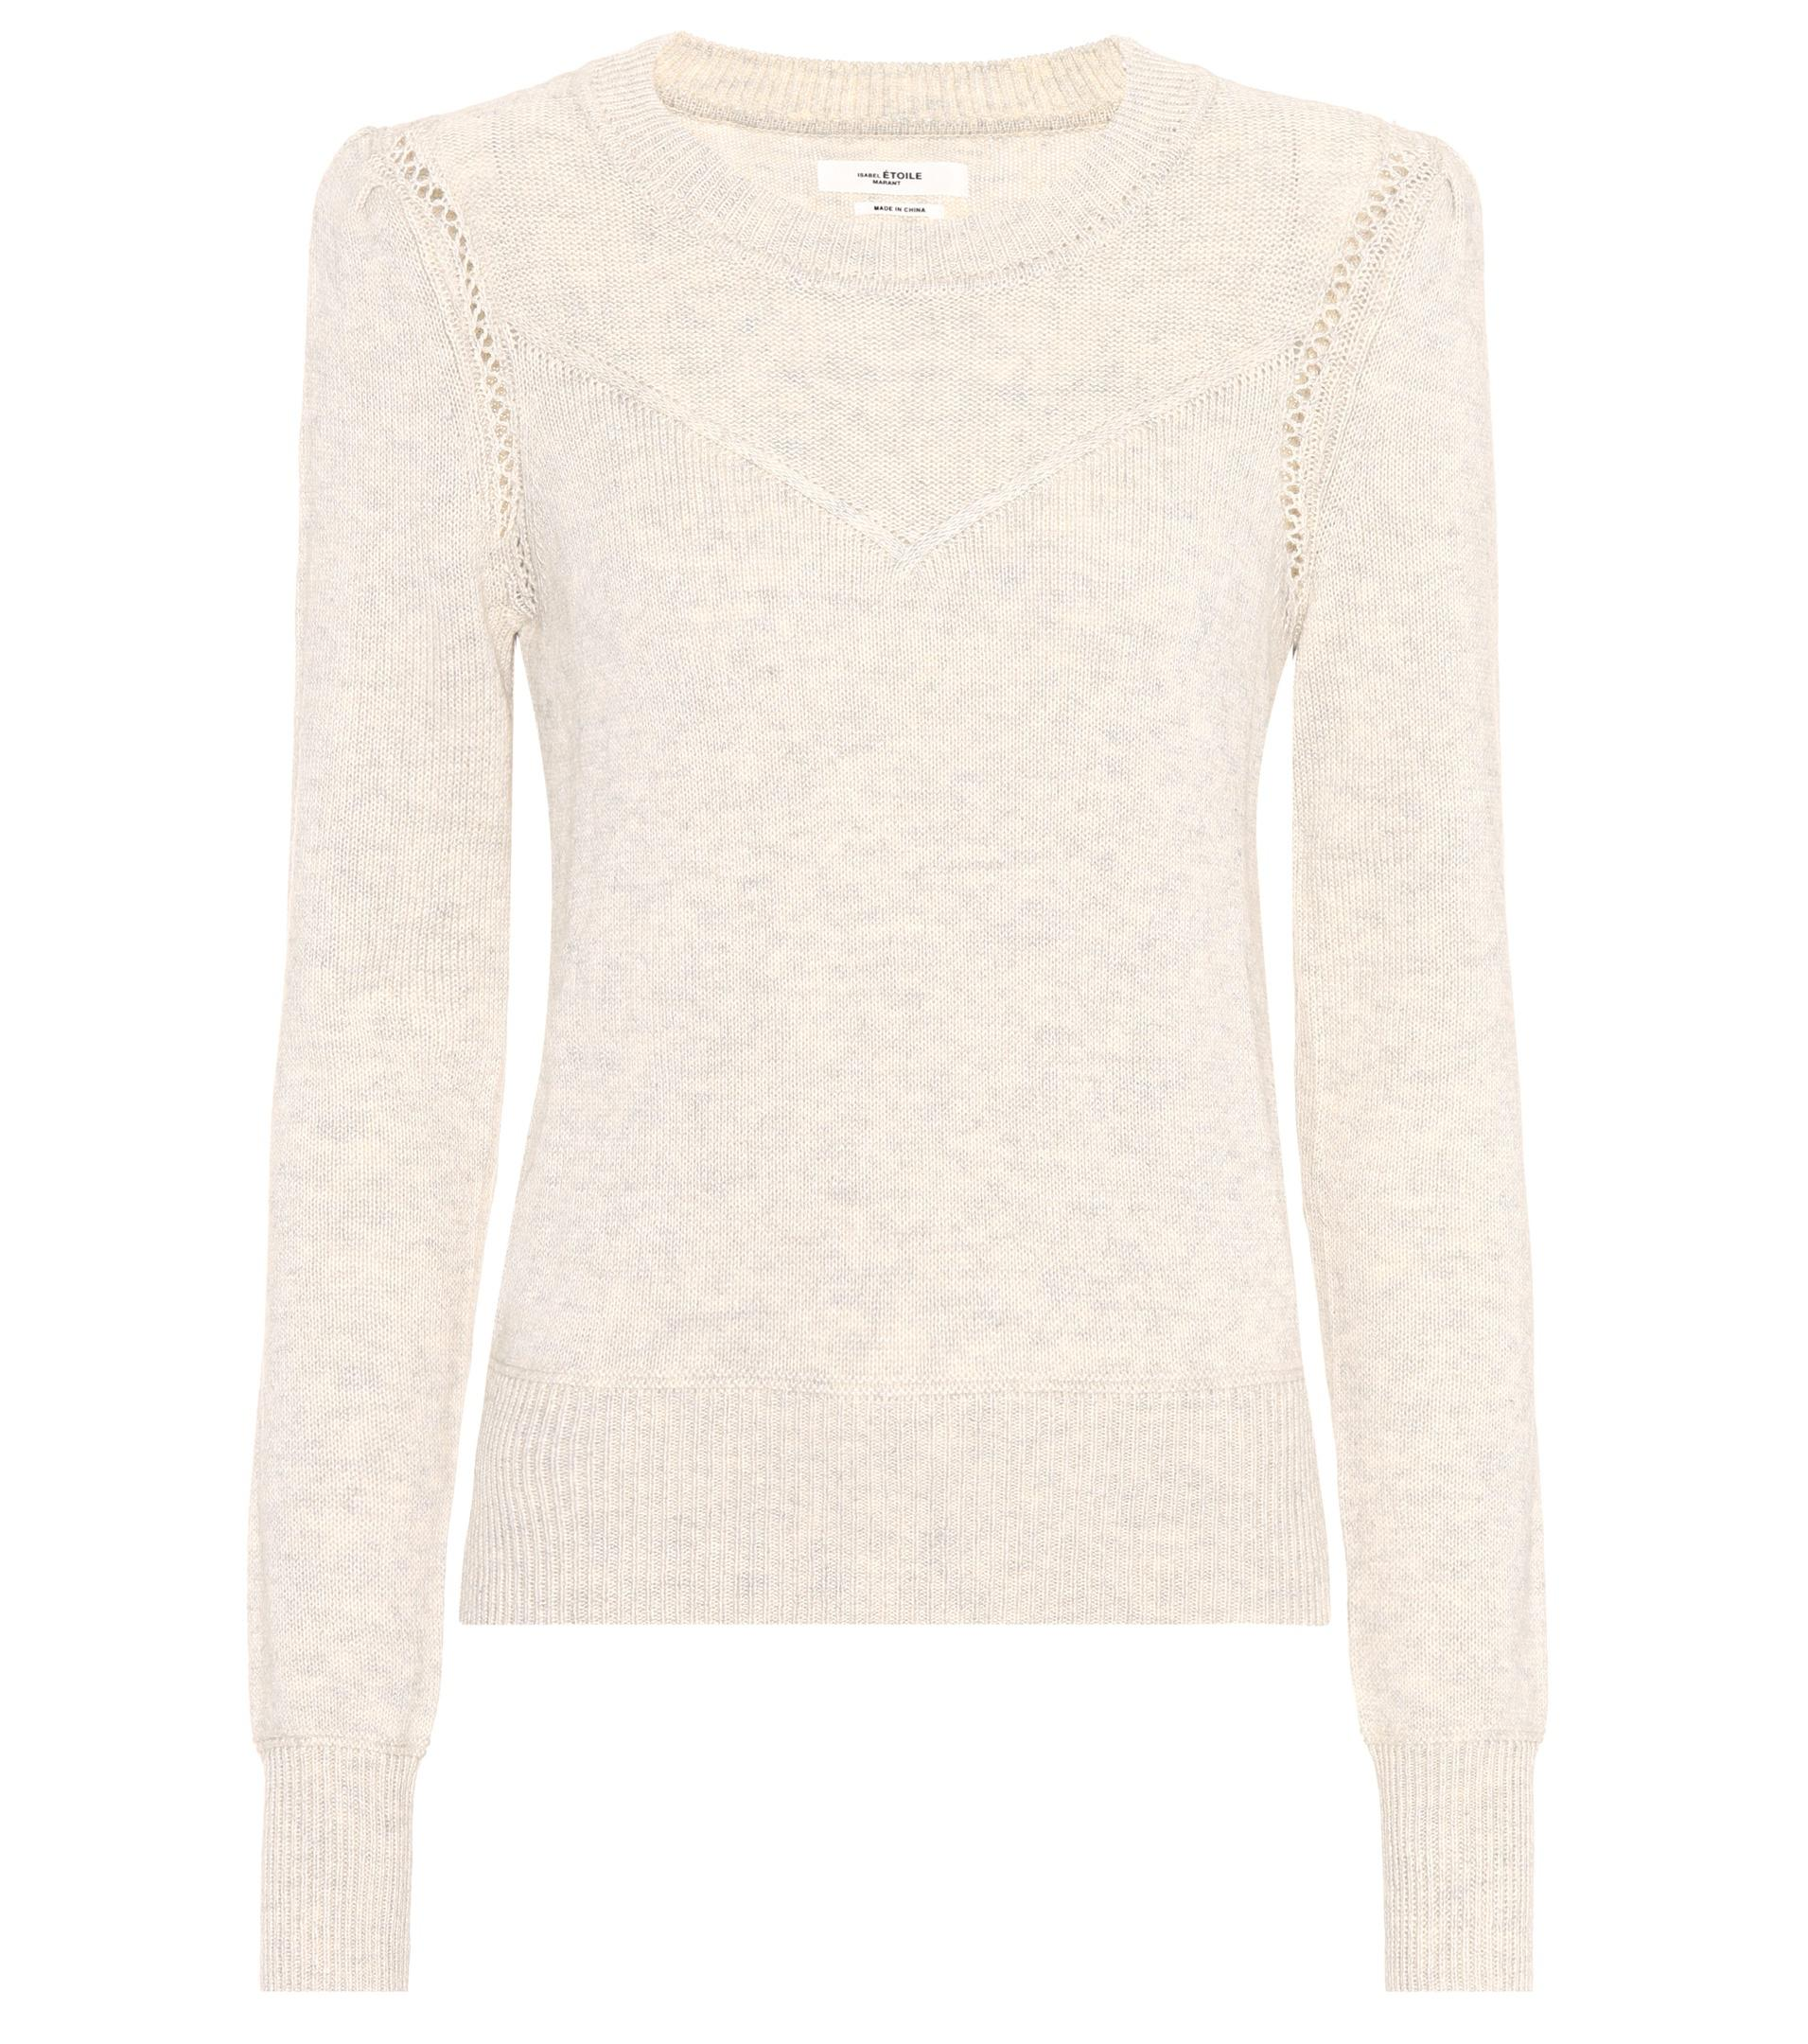 Étoile isabel marant Kios Cotton And Wool Sweater in Gray | Lyst